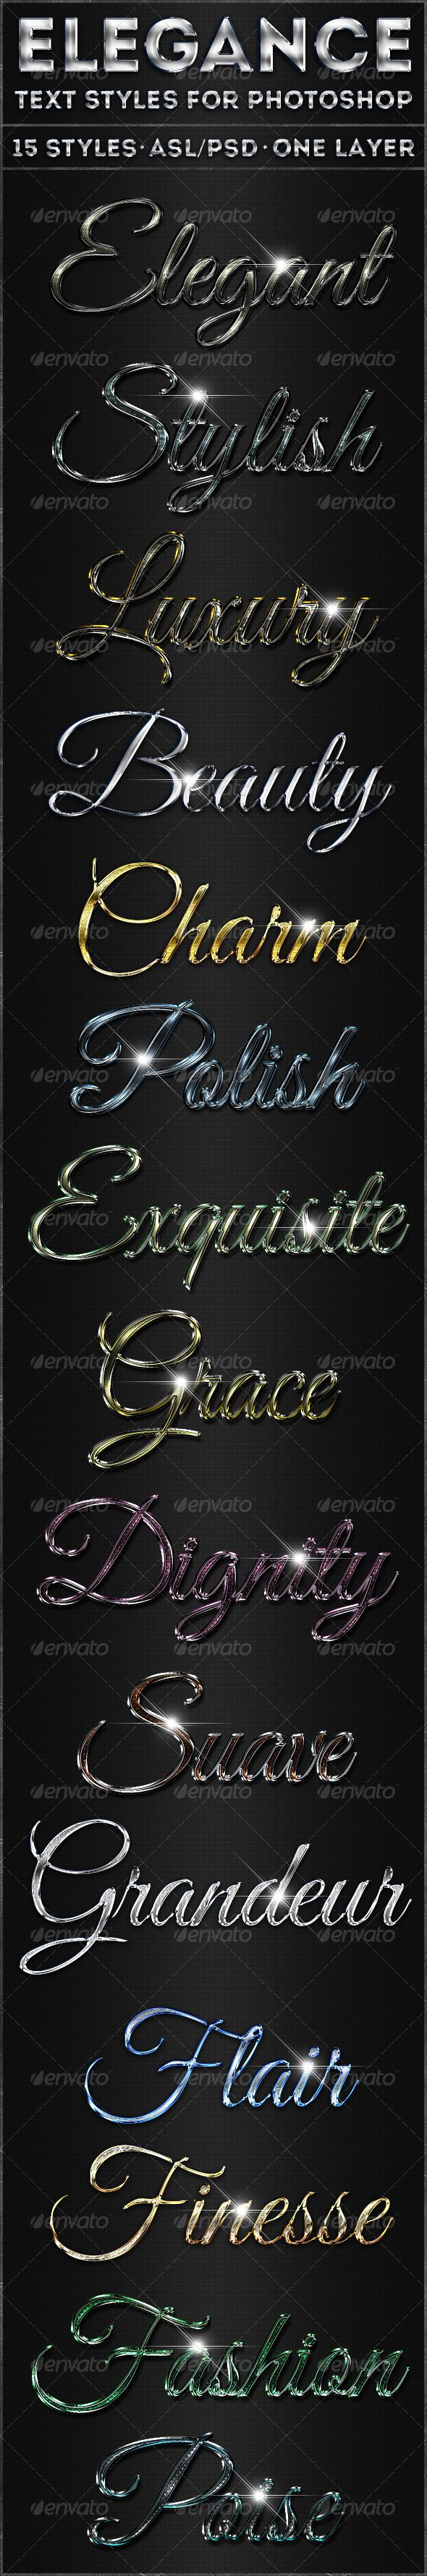 Elegance - Text Styles #GraphicRiver 15 Elegant Text Styles for Photoshop Here comes 15 very elegant, shiny, clean, edgy, high quality effects to pimp your boring text with elegant styles. They're so easy to use! All one-click layer styles. .psd file with effects used as seen in the image preview .asl file (text styles file) Readme.pdf file for instructions on installing, scaling and what free fonts are used, etc. Only the text styles are usable. All...